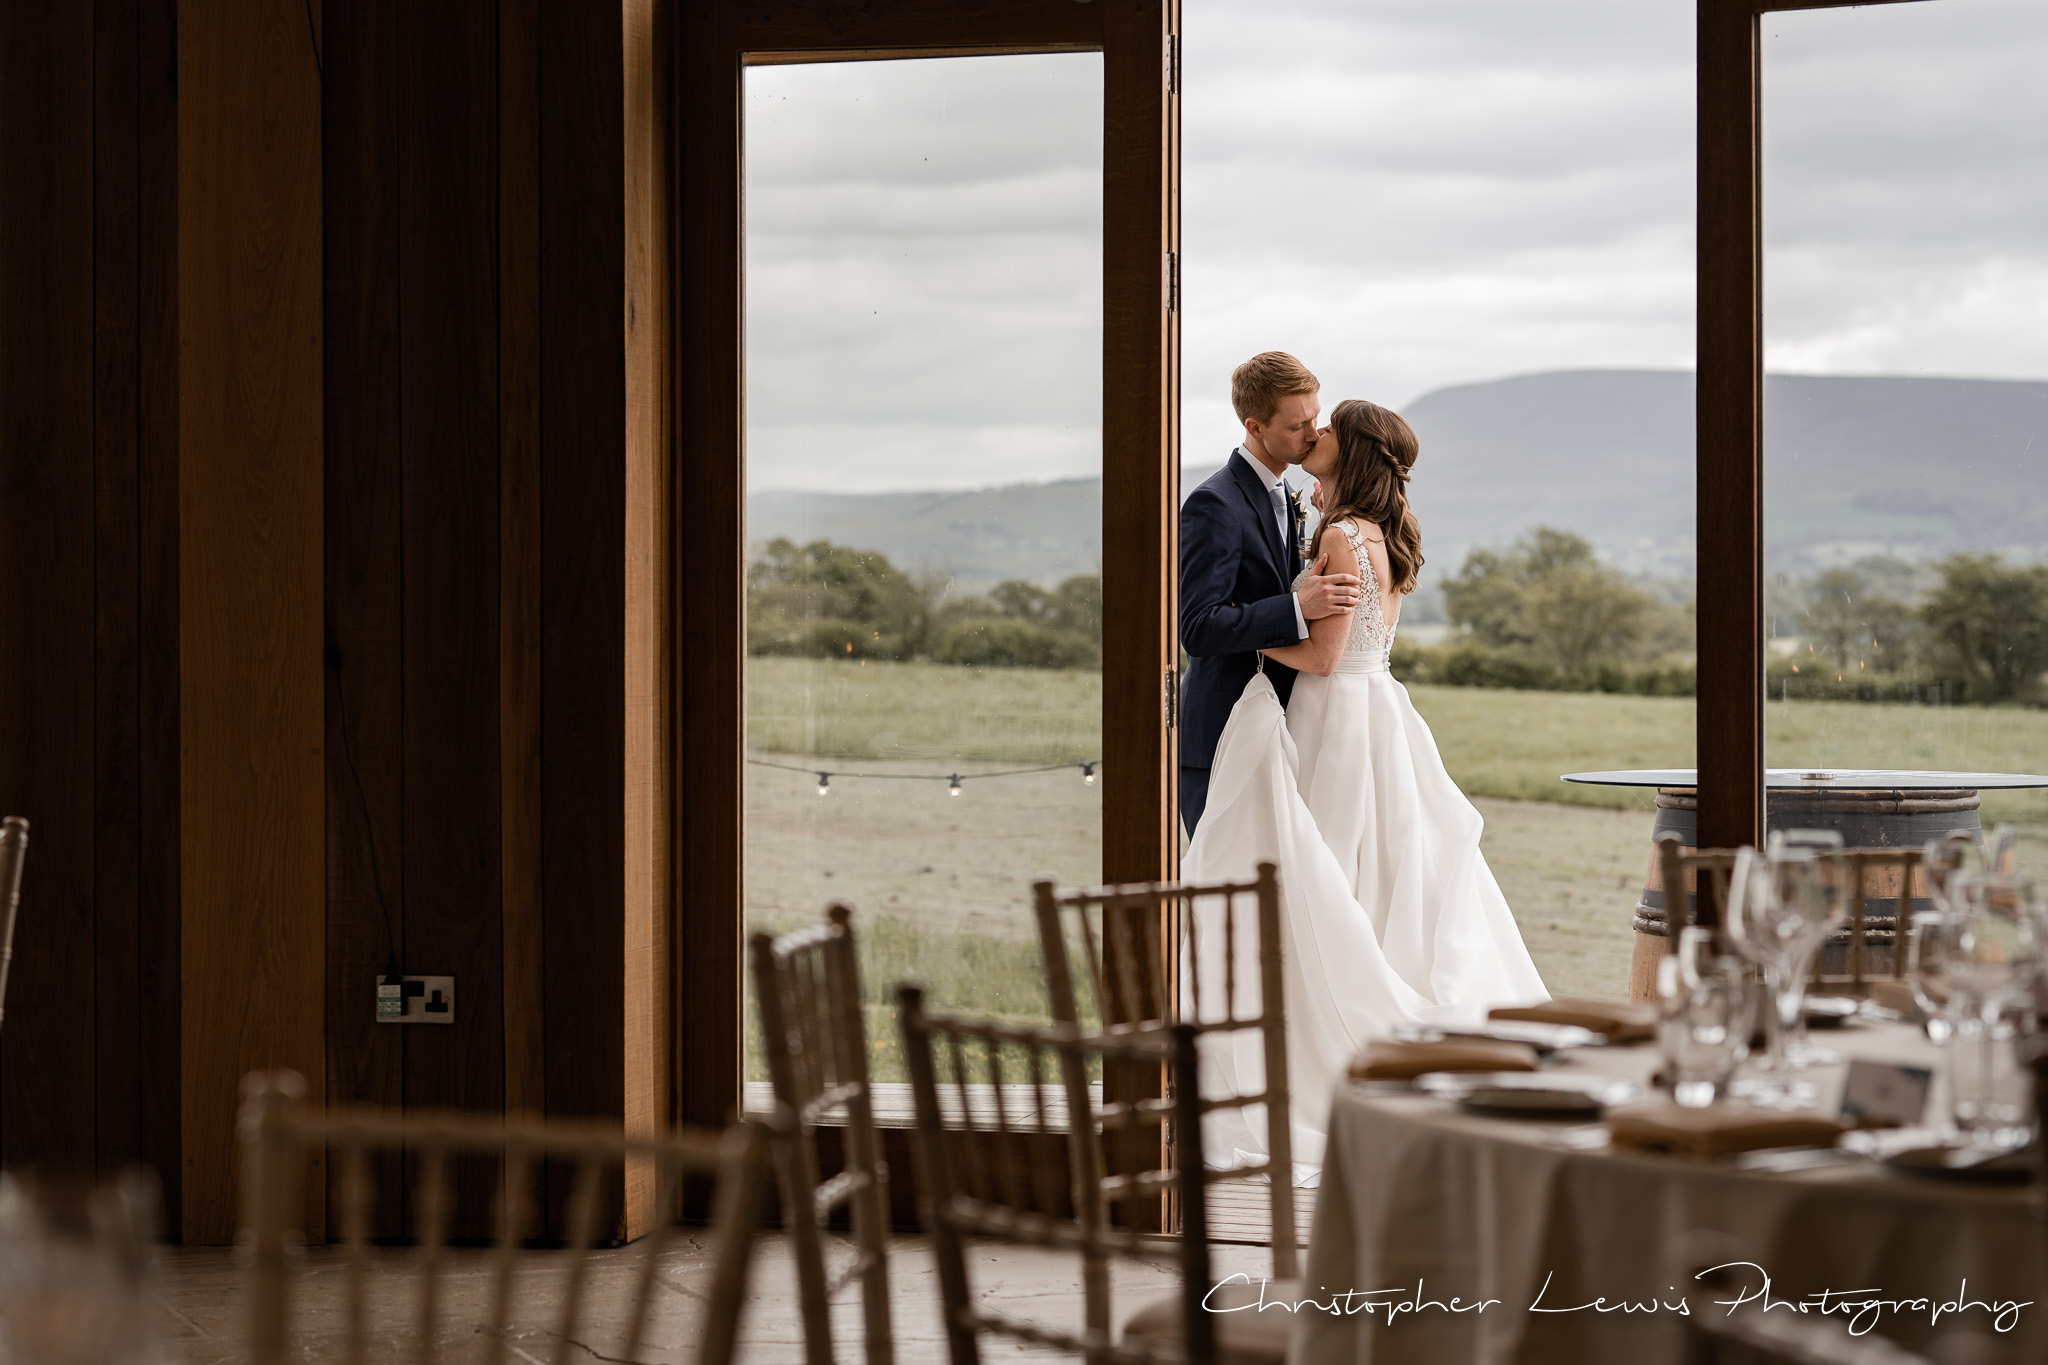 OutBarn Wedding - Christopher Lewis Photography